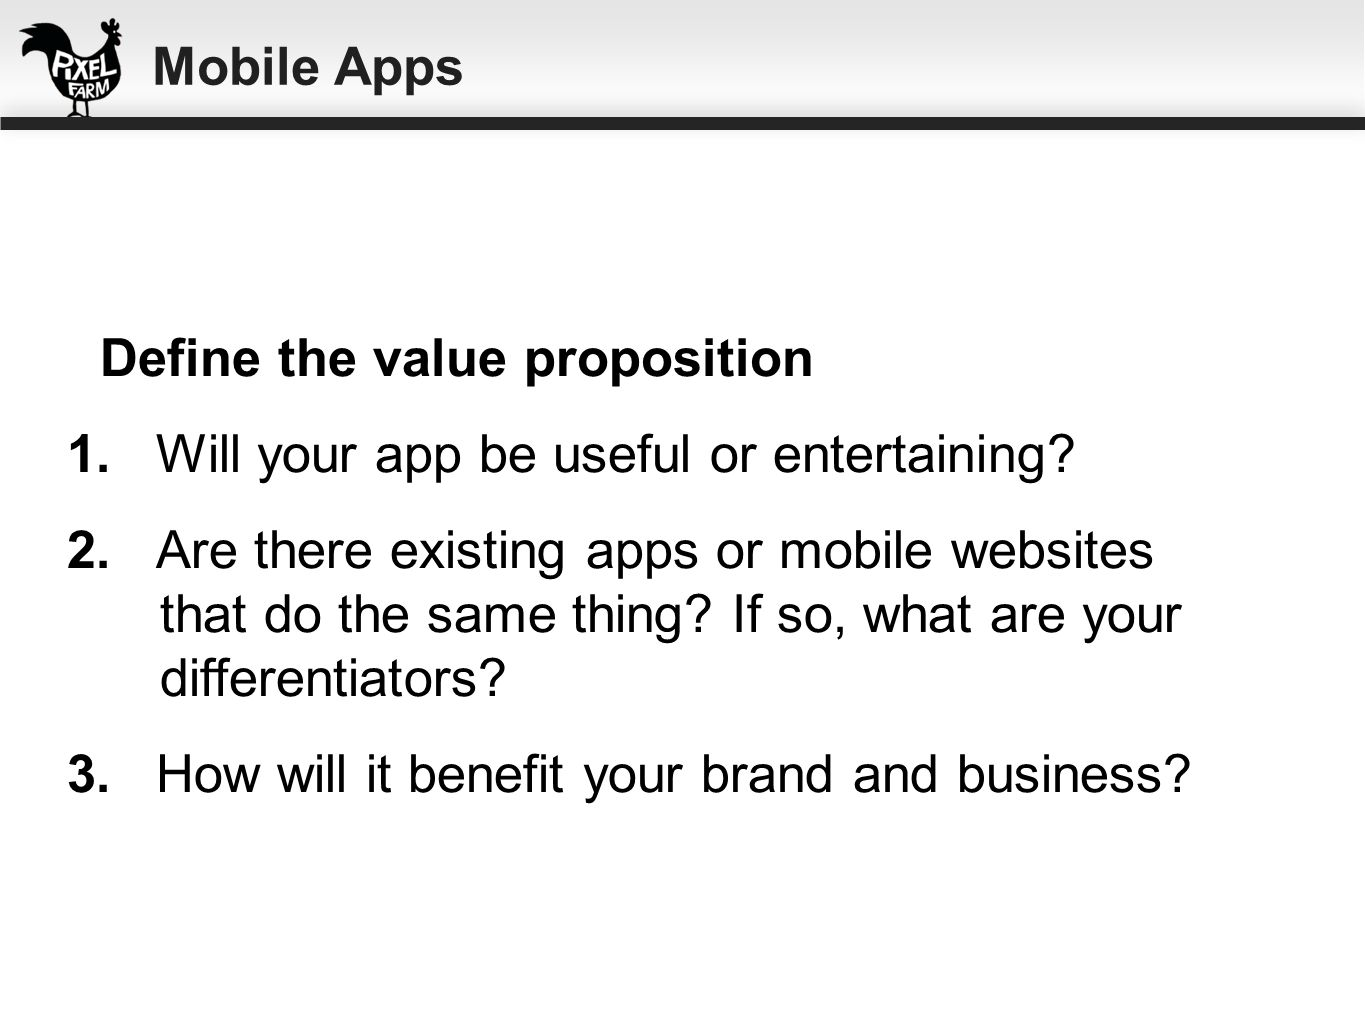 1. Will your app be useful or entertaining